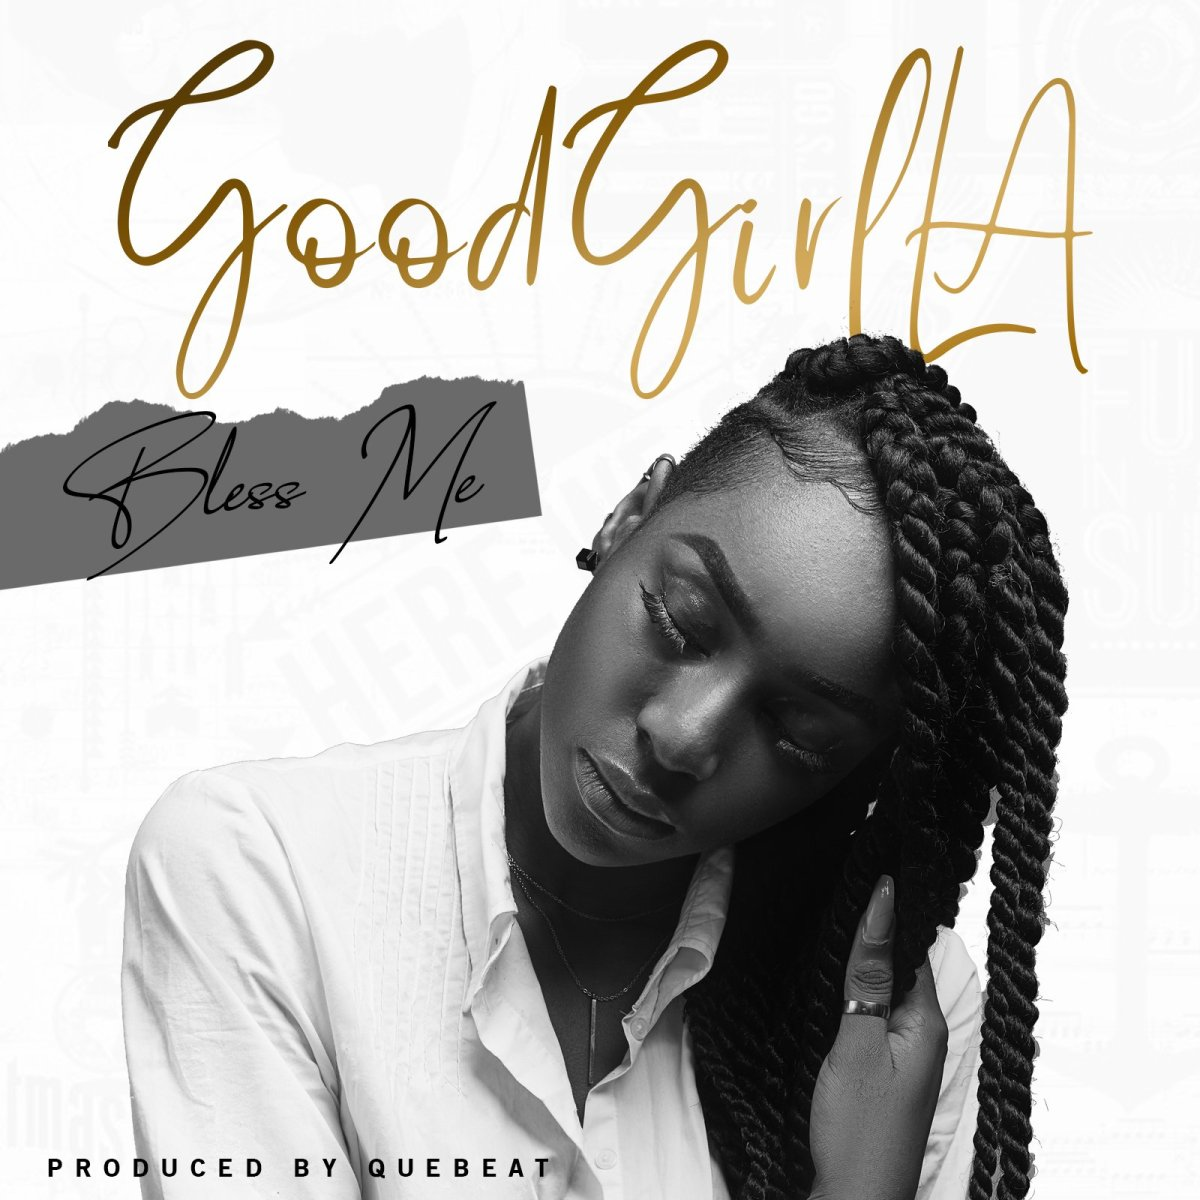 MP3: GoodGirl LA - Bless Me